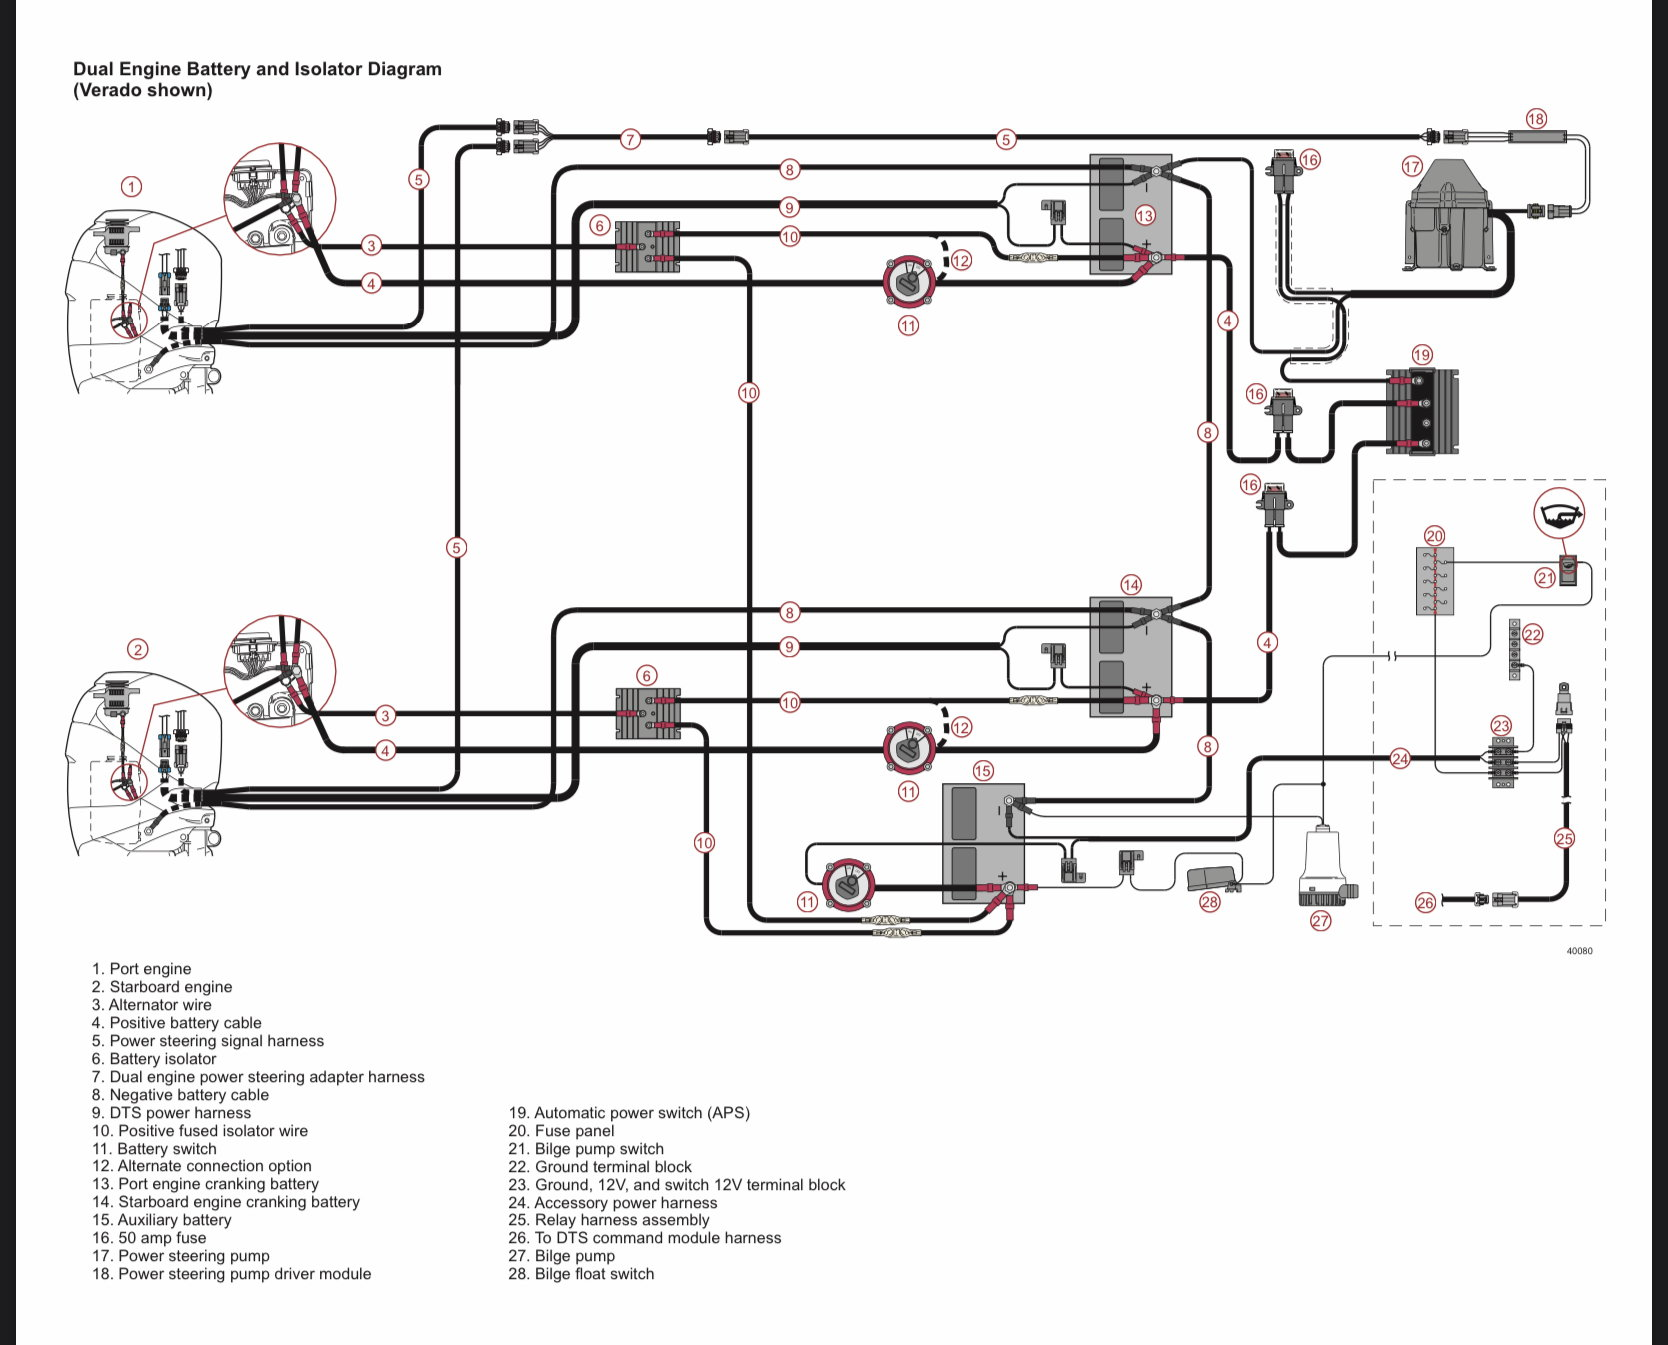 Kicker Zx300 1 Wiring Diagram from cimg7.ibsrv.net